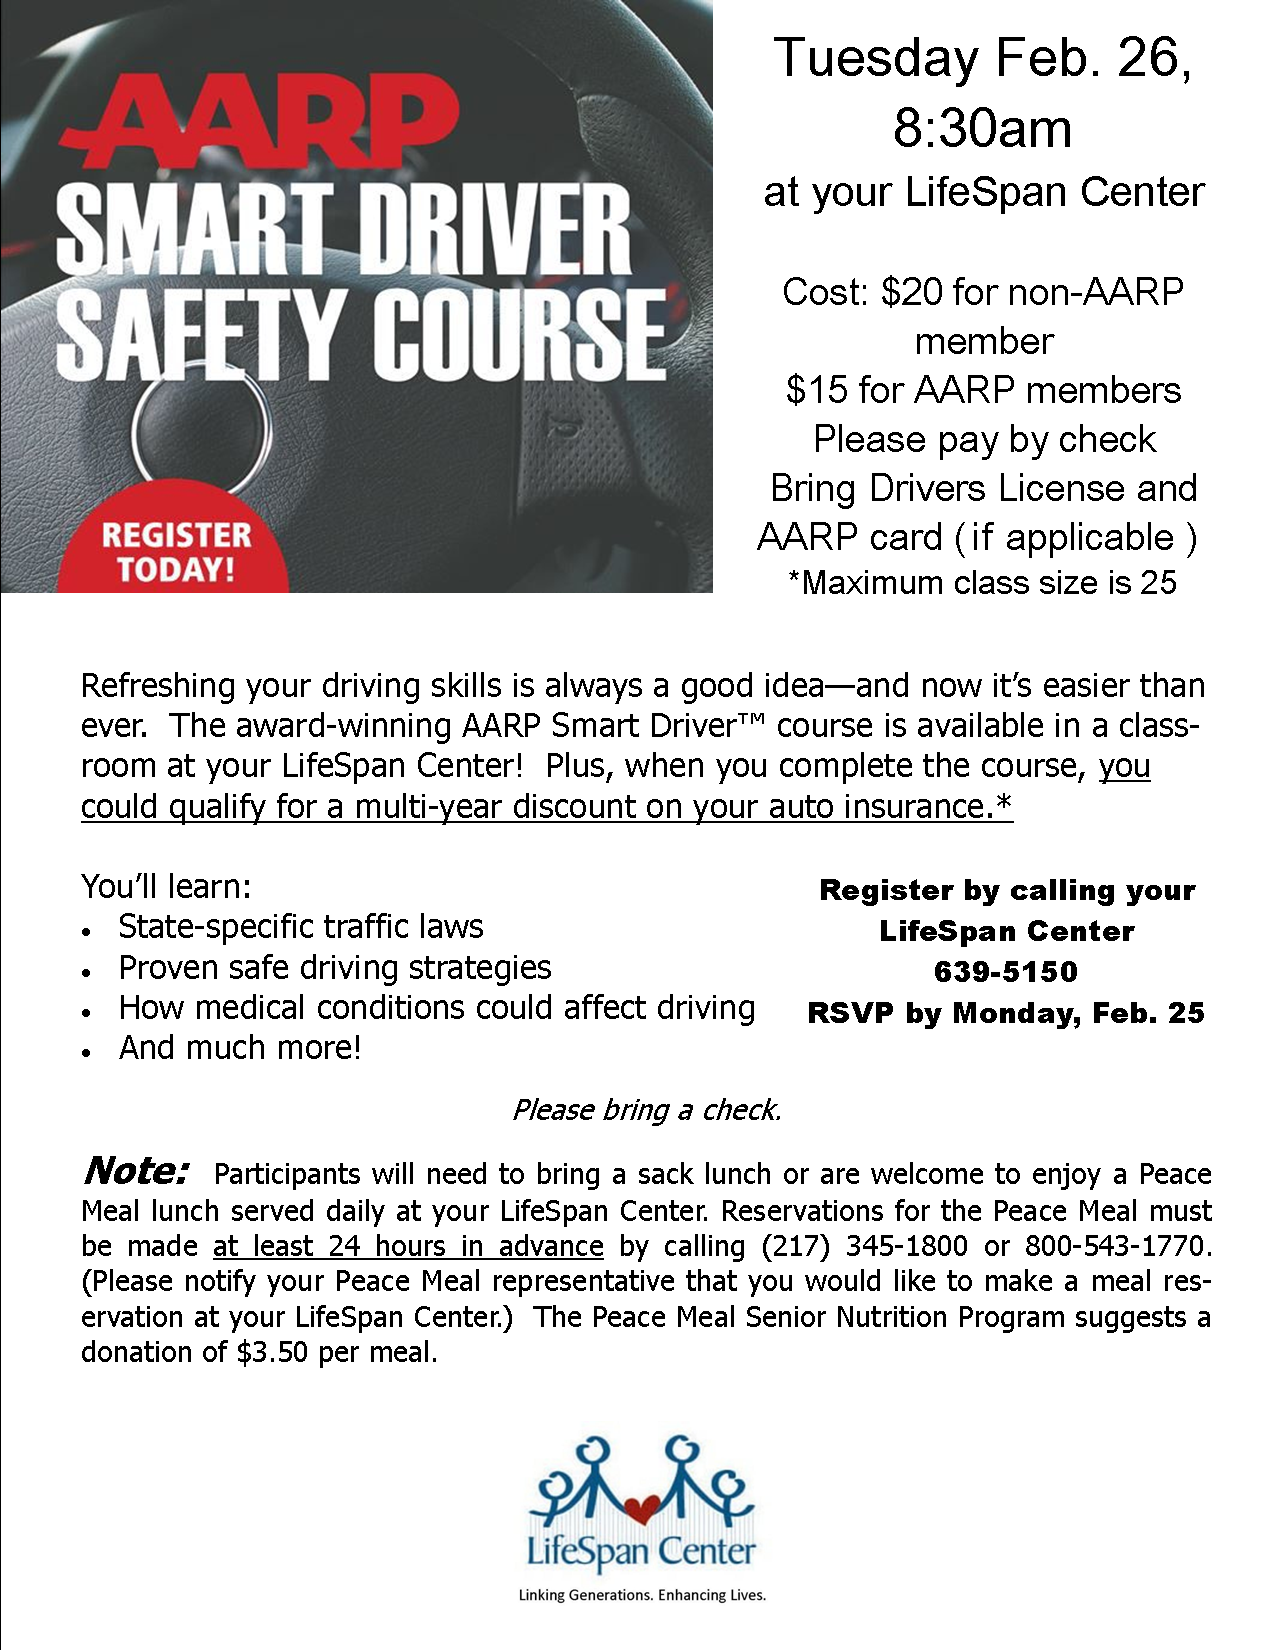 AARP Smart Driver Safety Course @ LifeSpan Center